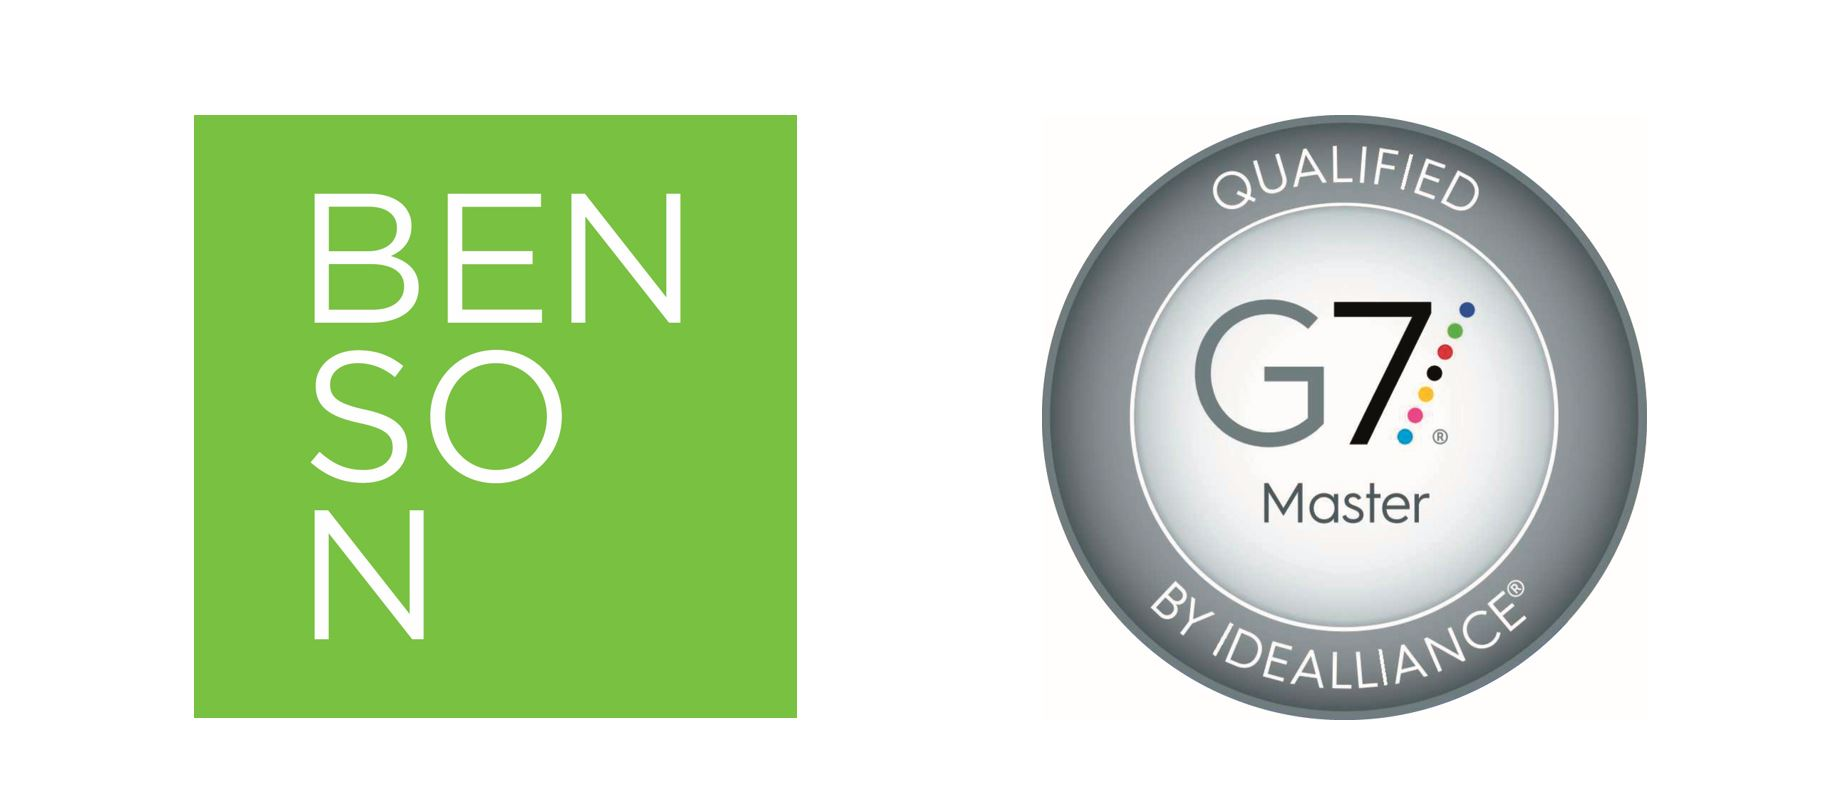 Benson Awarded G7® Master Qualification Status for Third Consecutive Year